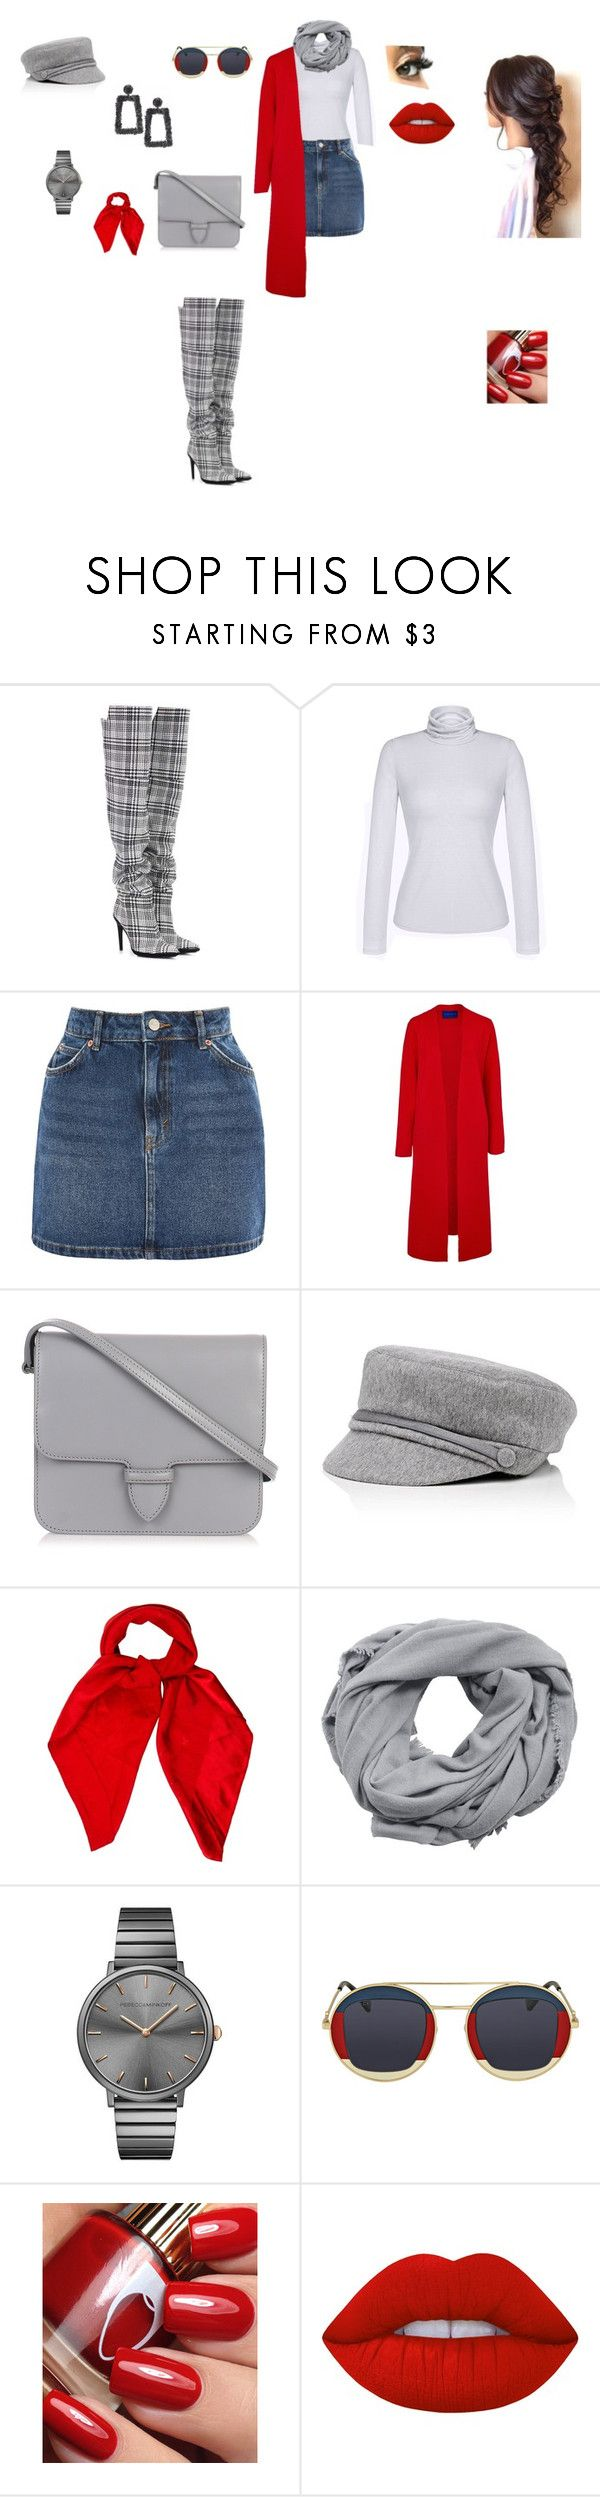 """chic outfit"" by helena94-1 on Polyvore featuring Off-White, Topshop, Winser London, Alaïa, Eugenia Kim, Louis Vuitton, MANGO, Rebecca Minkoff, Gucci and Sachin + Babi"